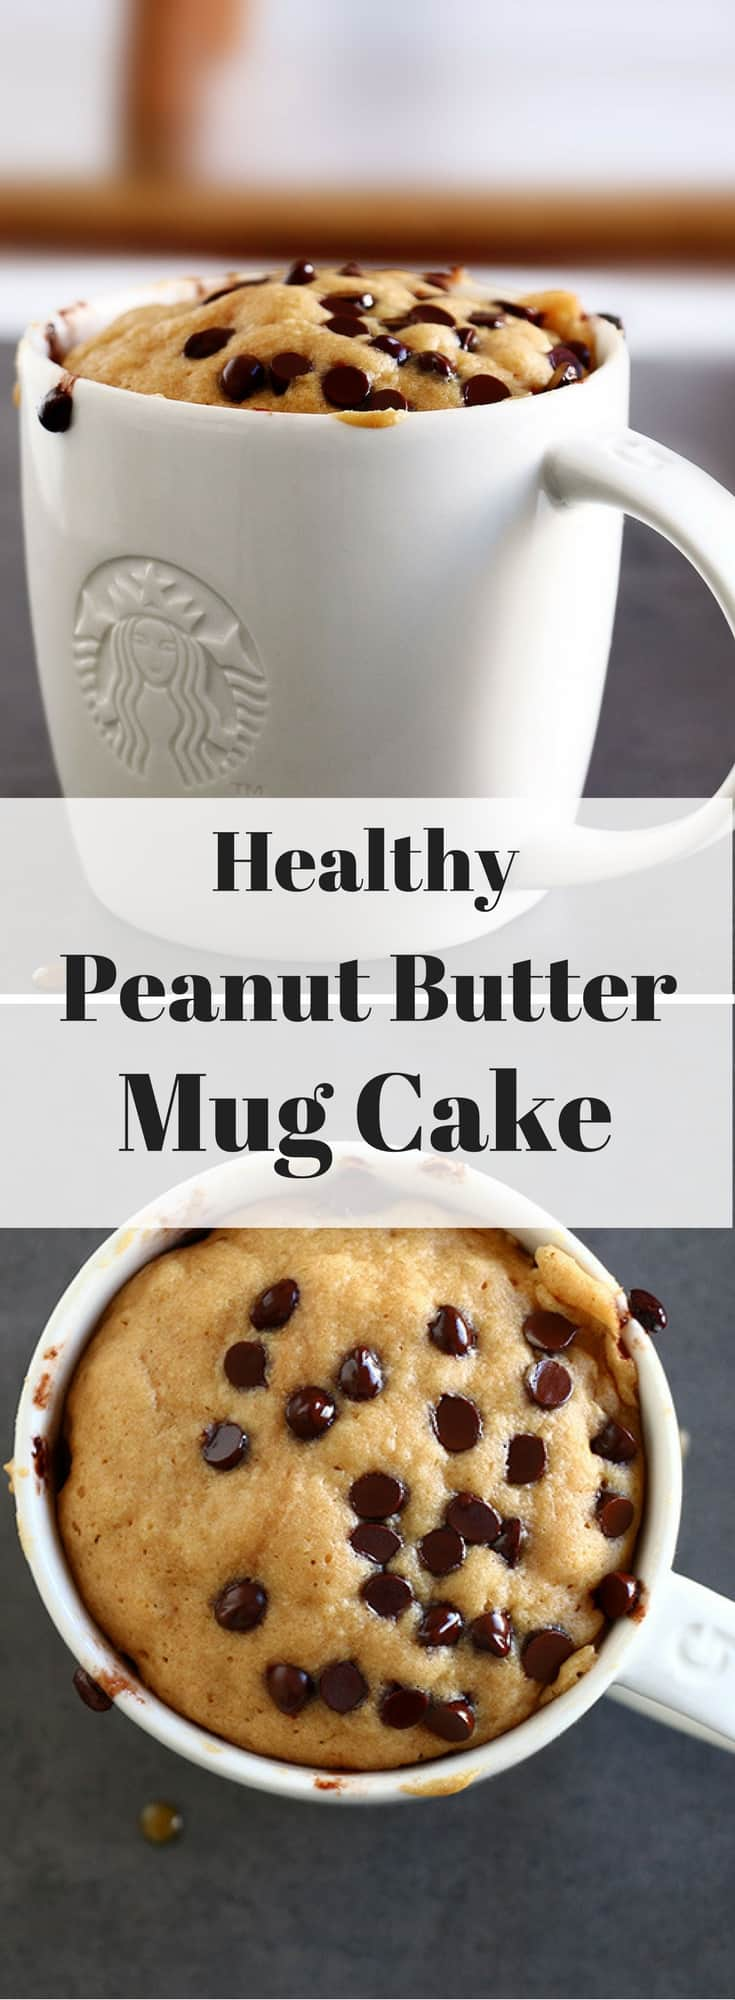 Healthy Peanut Butter Mug Cake - Baking-Ginger